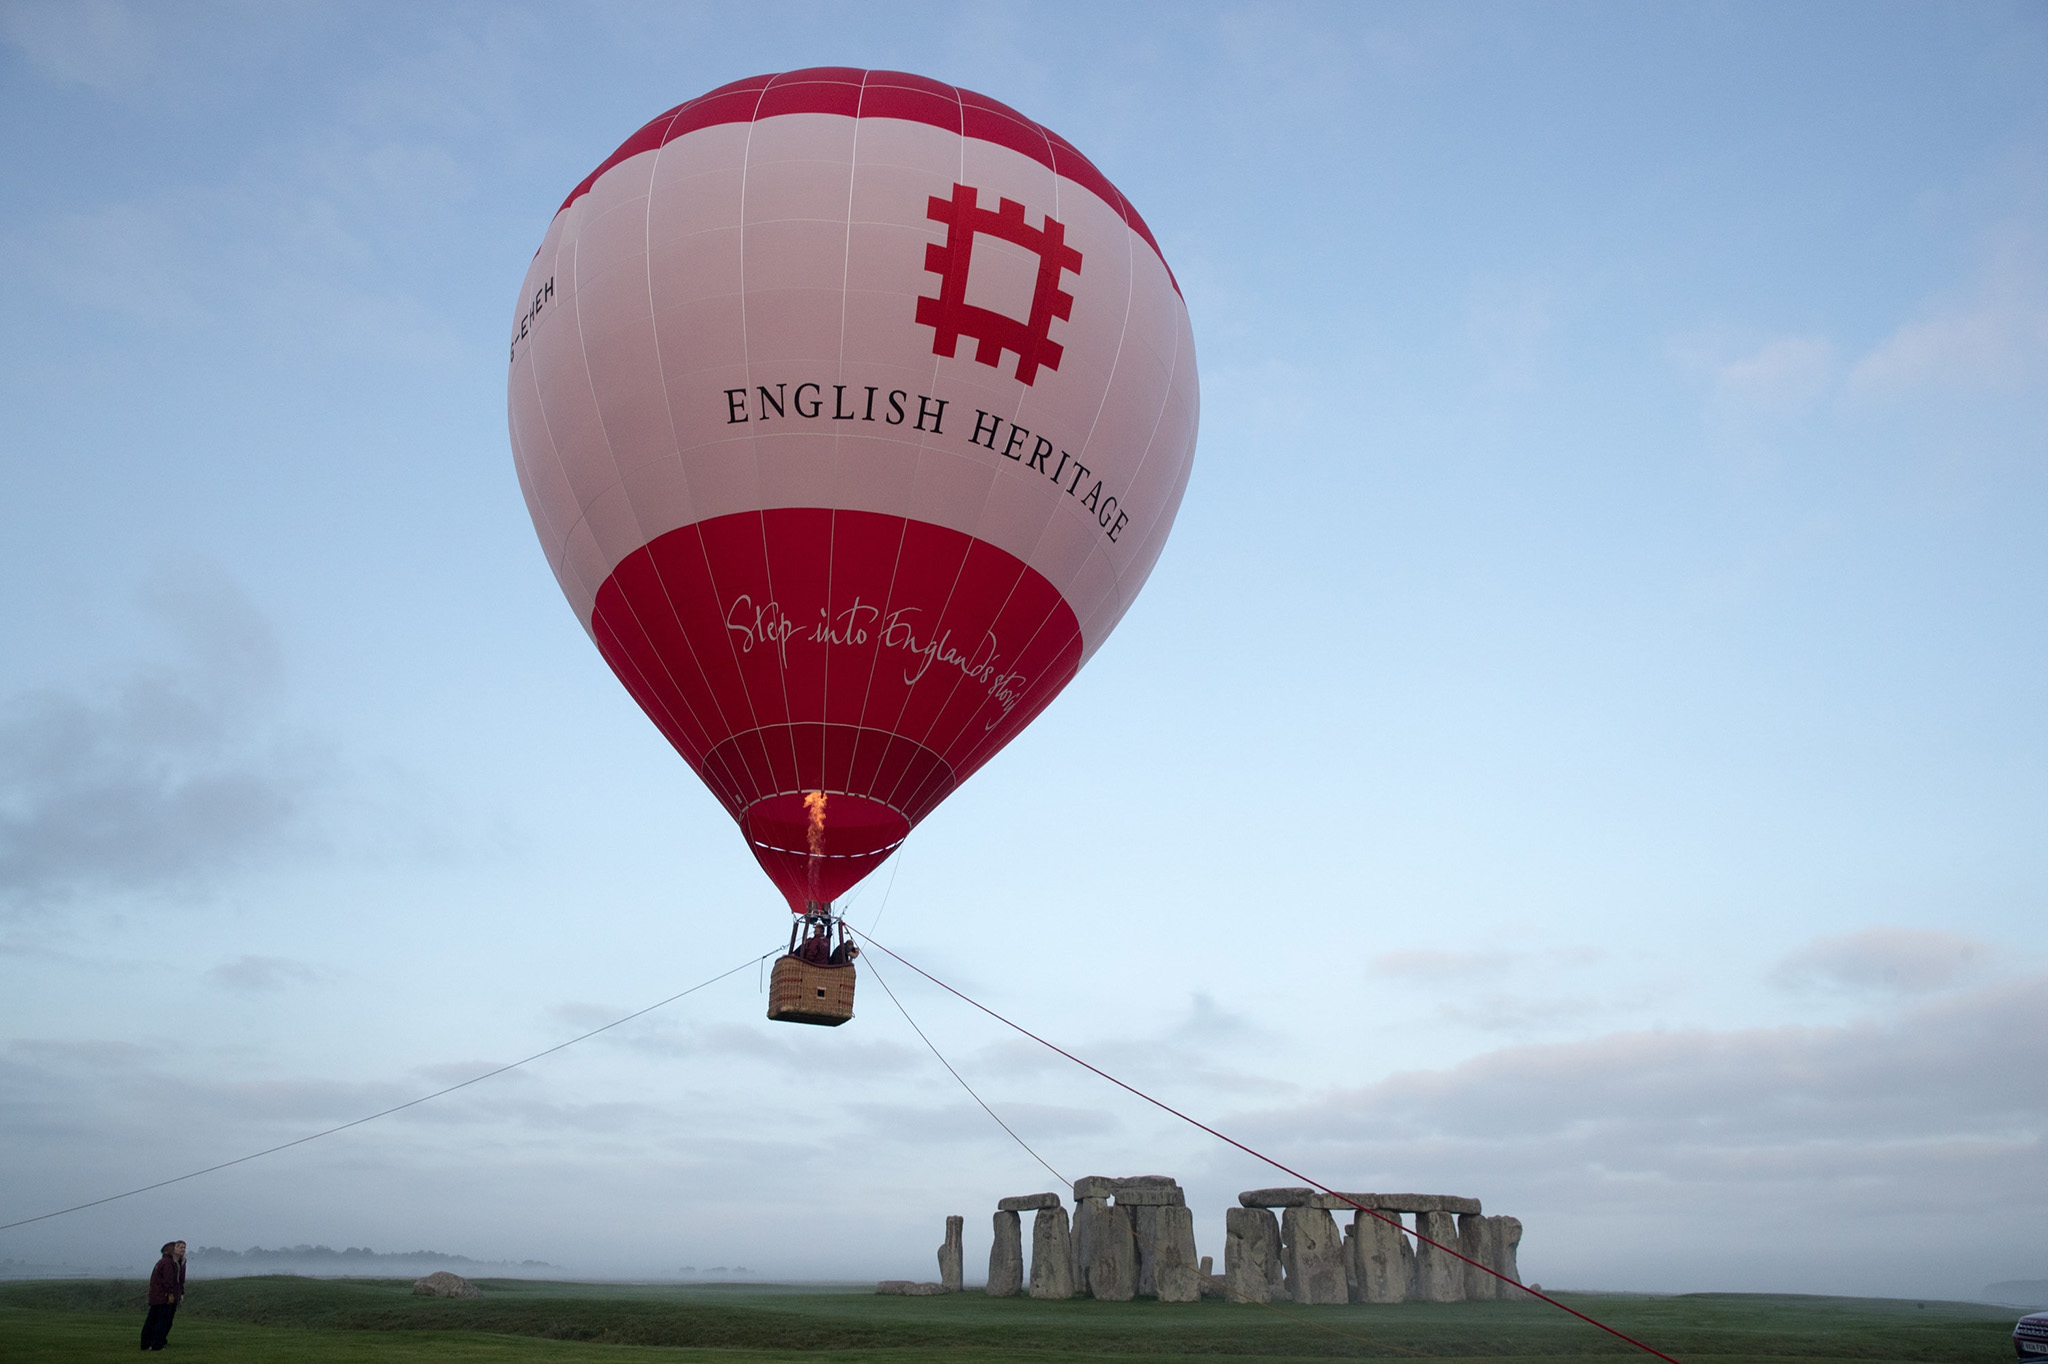 A tethered hot air balloon flies over the ancient neolithic monument of Stonehenge near Amesbury on September 7, 2016 in Wiltshire, England.  To mark the 30th anniversary of Stonehenge becoming a World Heritage Site, English Heritage has launched a competition offering members of the public the chance of a hot balloon ride which allows the chance to see a  unique view of Stonehenge within in a wider prehistoric landscape but also the see the recent changes to its setting in recent years including the removal of the A344 and the old car park.  (Photo by Matt Cardy/Getty Images)